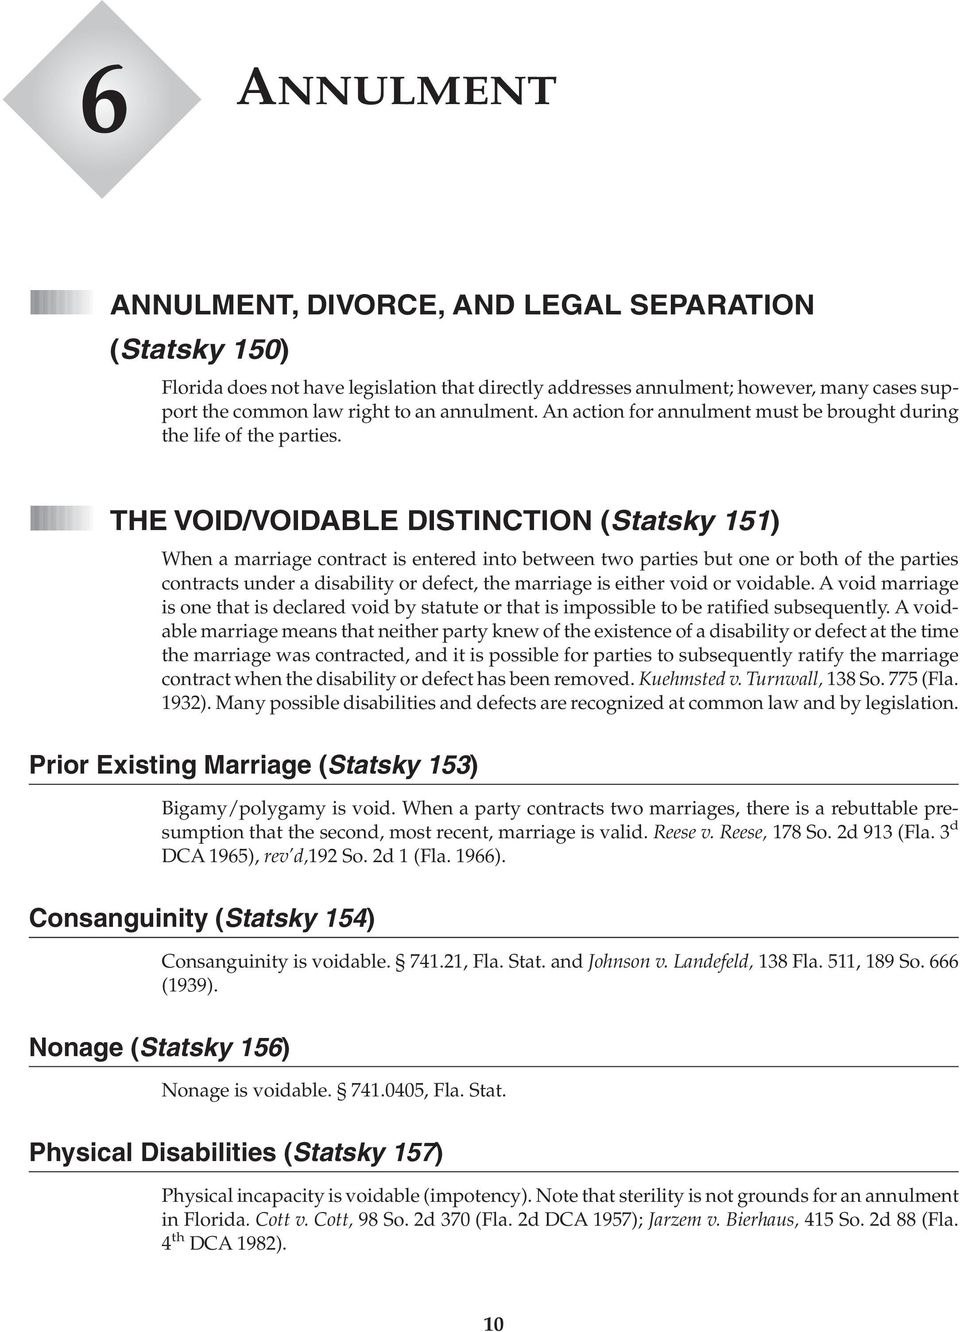 THE VOID/VOIDABLE DISTINCTION (Statsky 151) When a marriage contract is entered into between two parties but one or both of the parties contracts under a disability or defect, the marriage is either